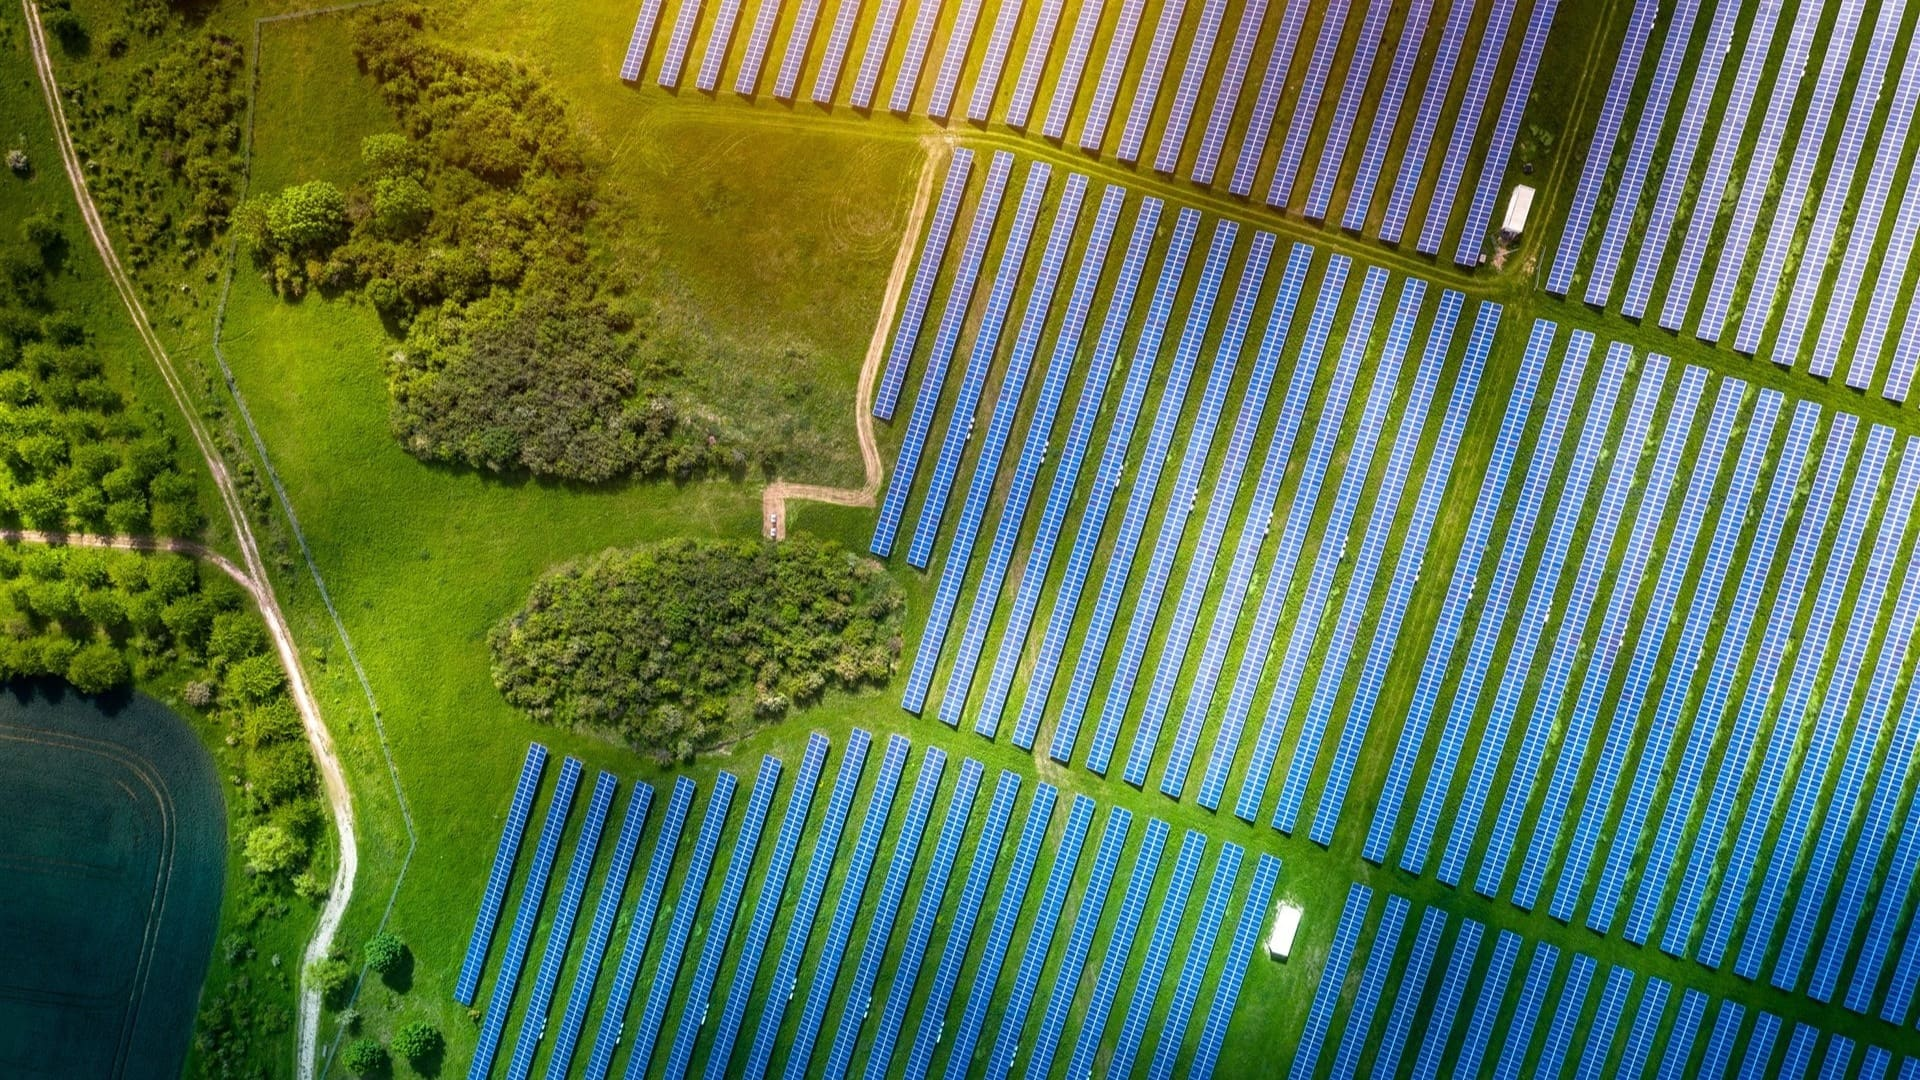 Aerial view of solar panels on the green ground